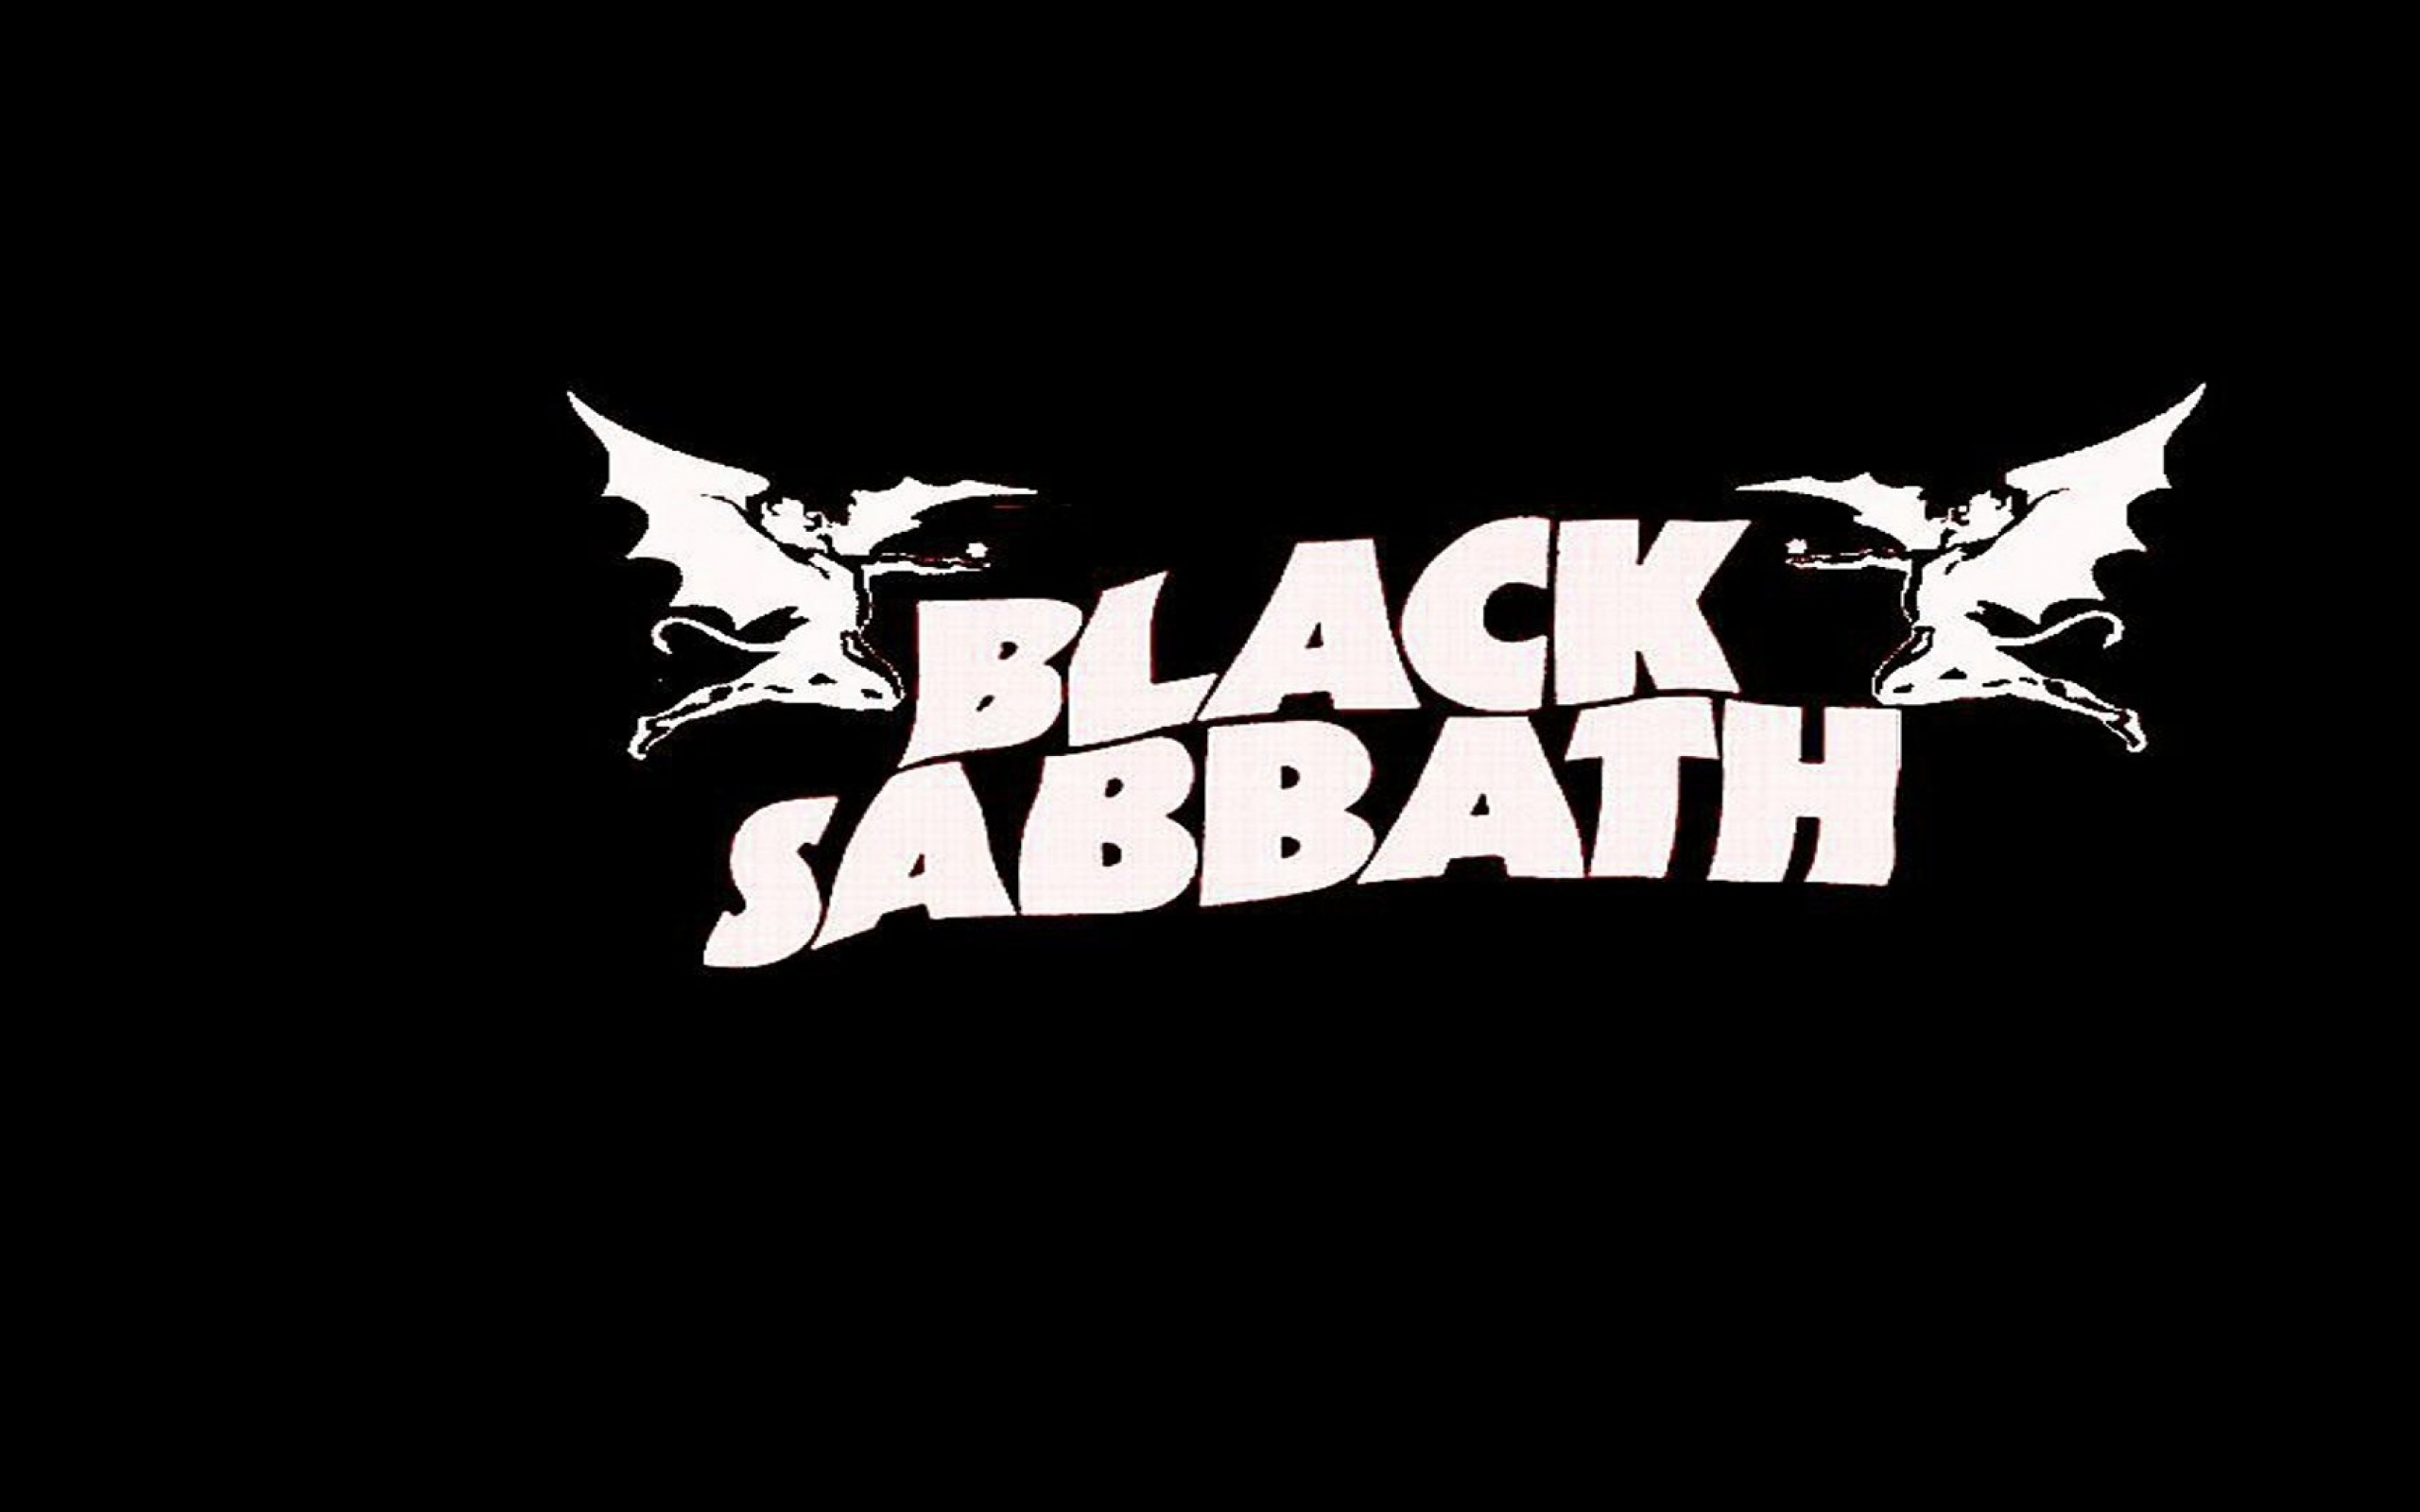 PlusPng pluspng.com Black Sabbath Metal Logo Vector Wallpaper PlusPng pluspng.com - Black  Sabbath . - Black Sabbath 1986 Logo PNG